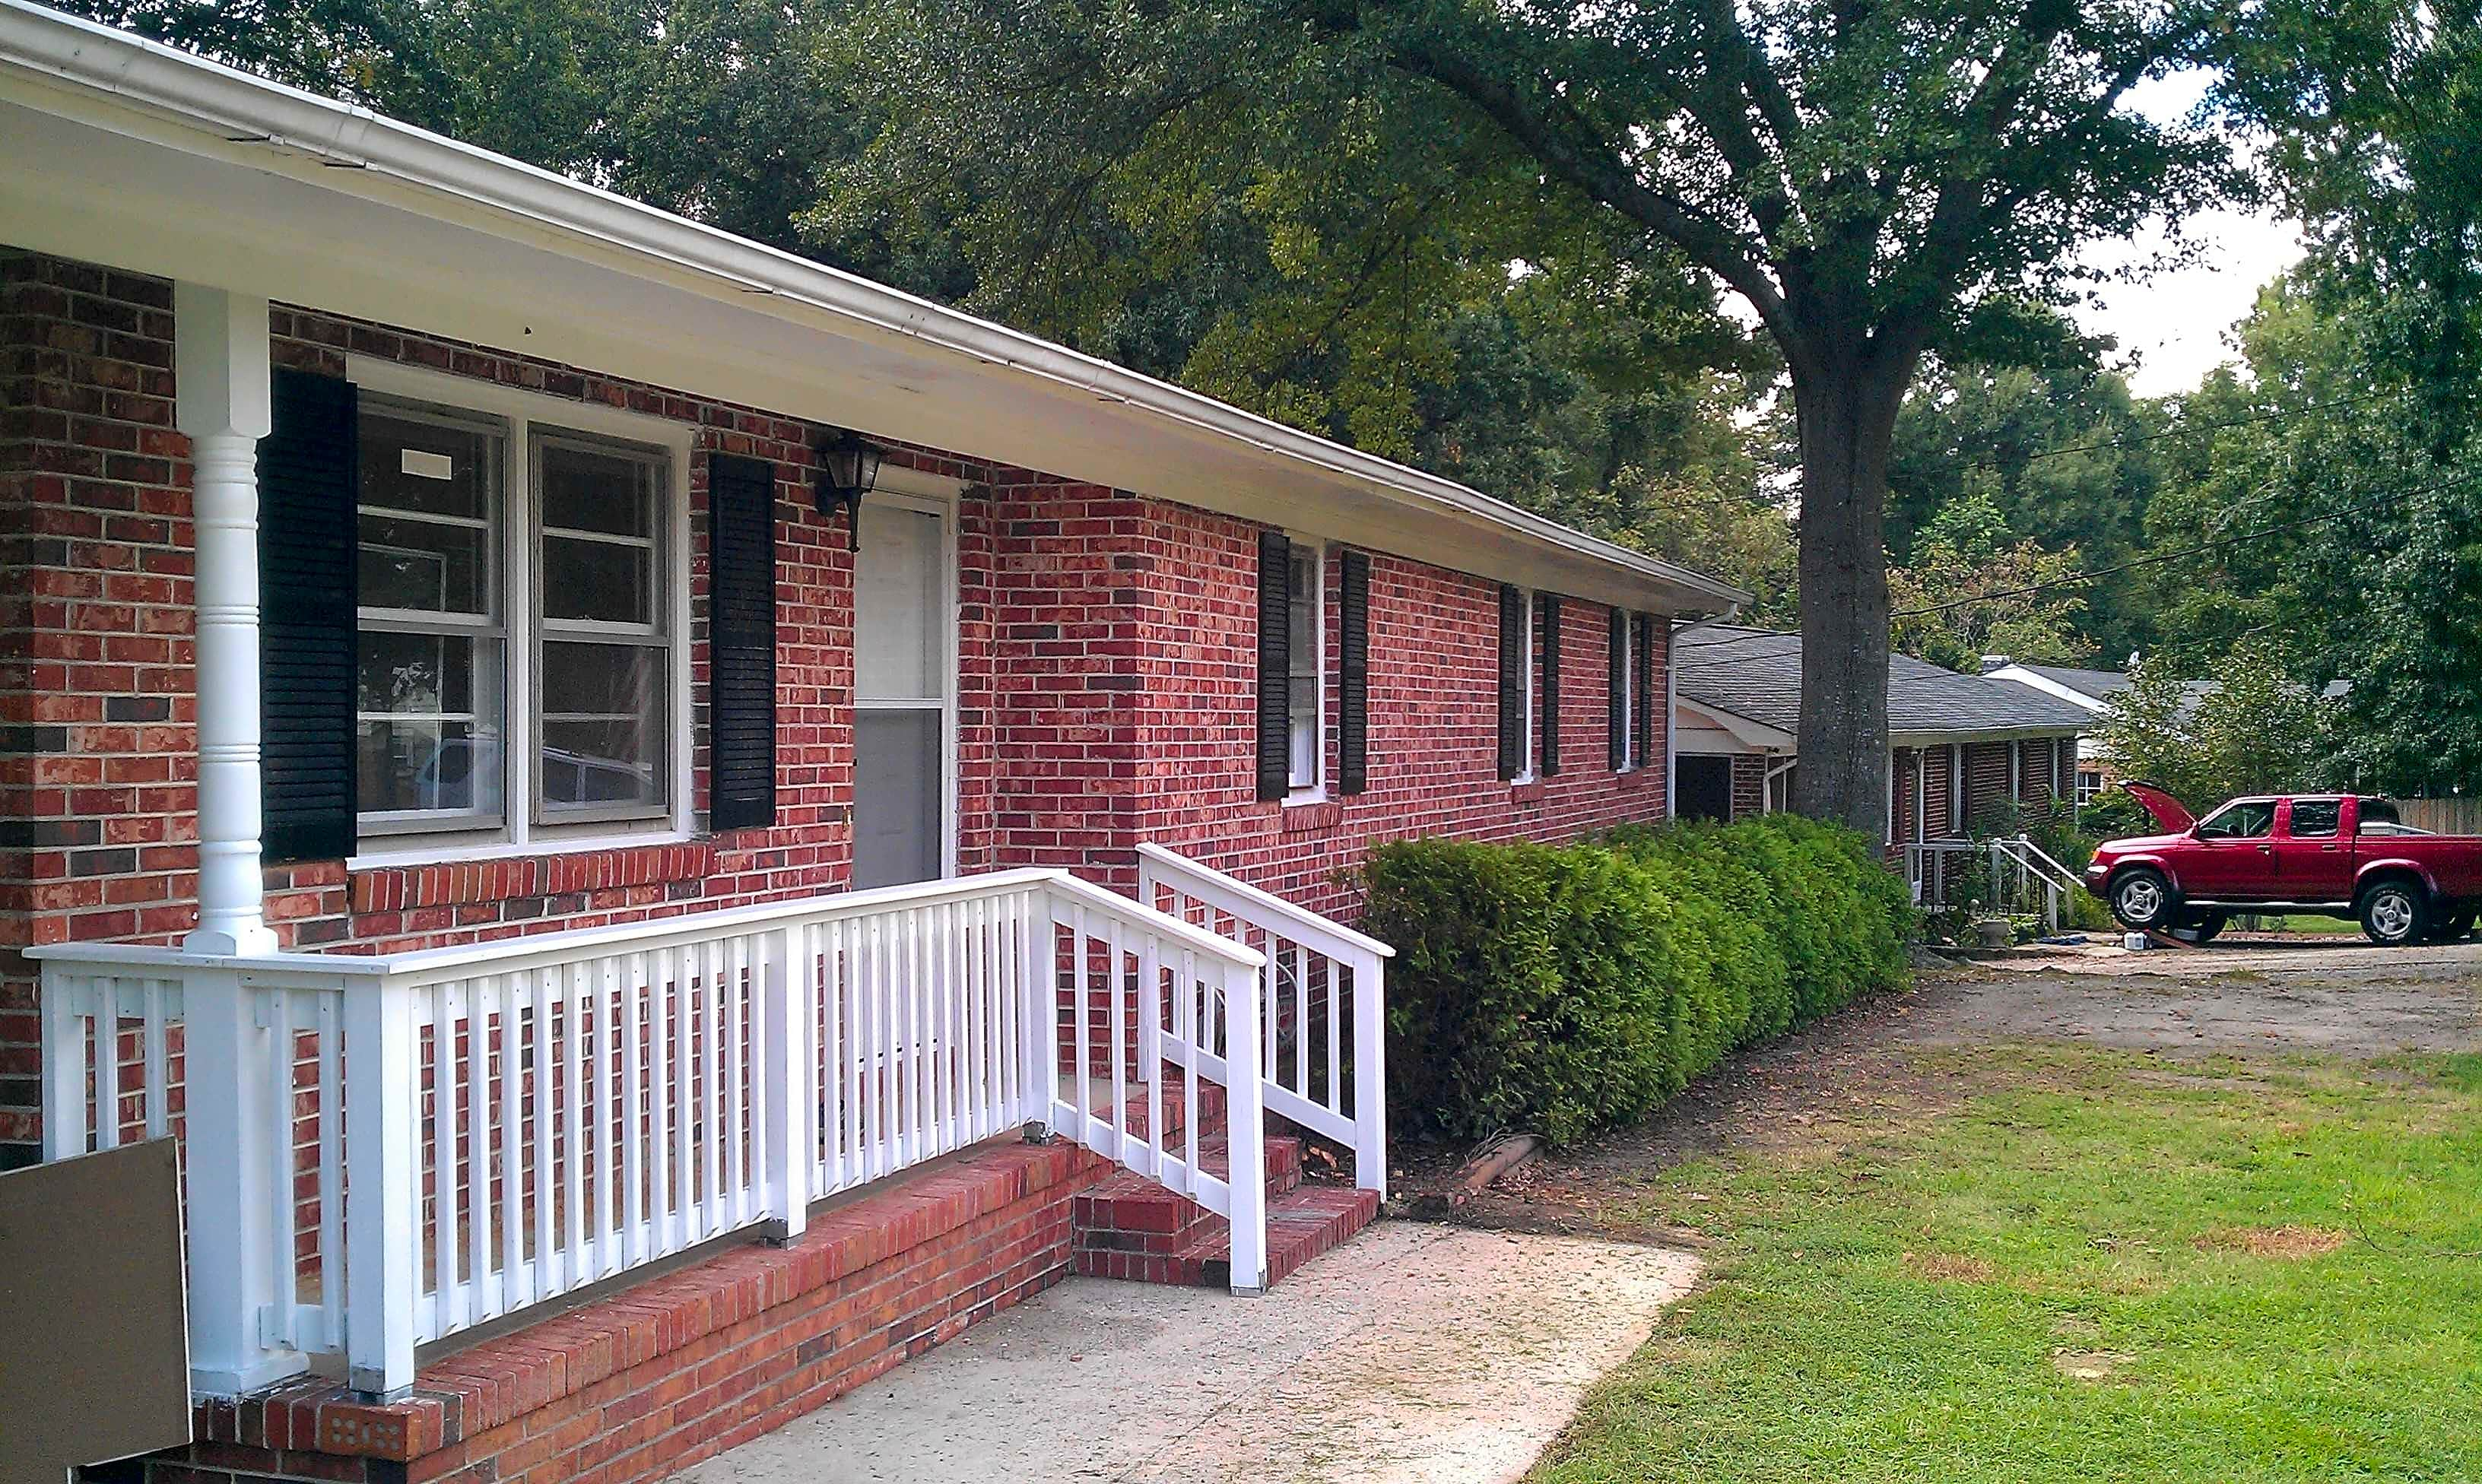 Greenville Houses For Rent Apartments In Greenville South Carolina Rental Properties Homes